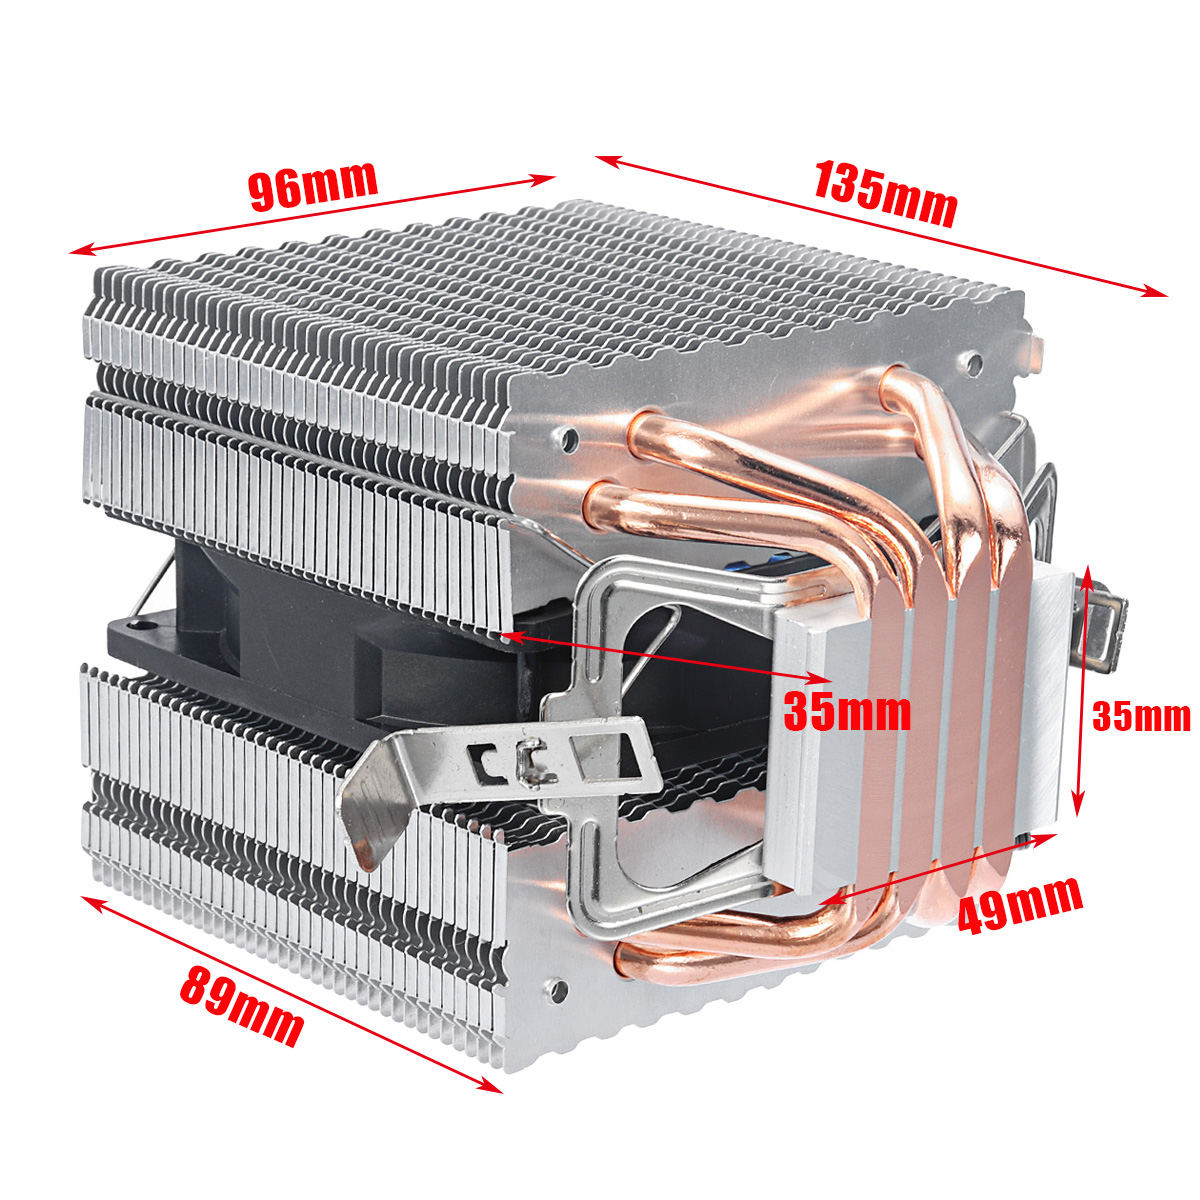 Aluminum LED CPU Cooler Cooling Fan Heat Sink For Intel LAG1156/1155/1150/775 AMD